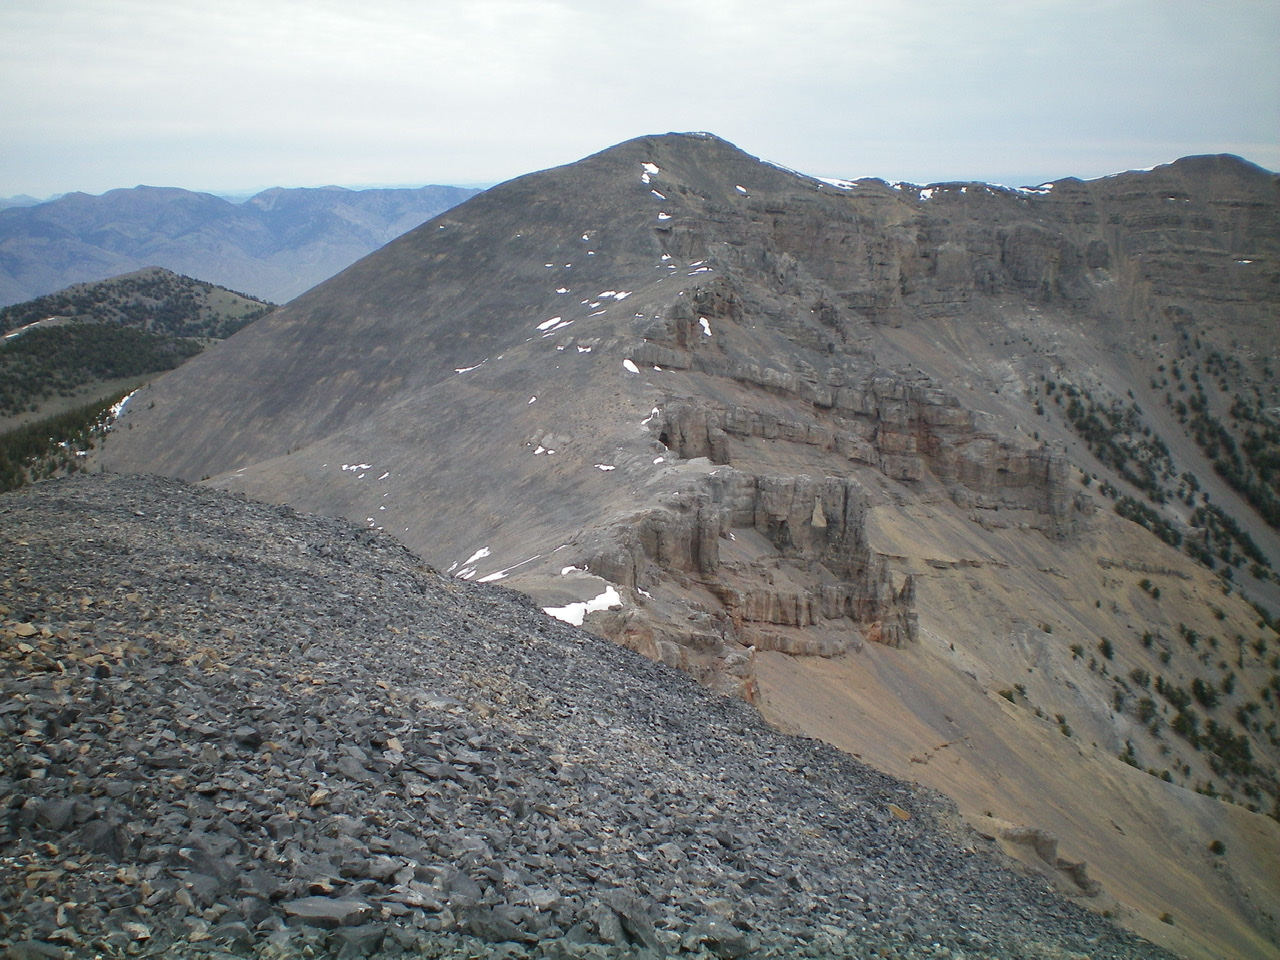 The connecting ridge between Peak 10604 and Shril Benchmark, as viewed from the summit of Peak 10604.